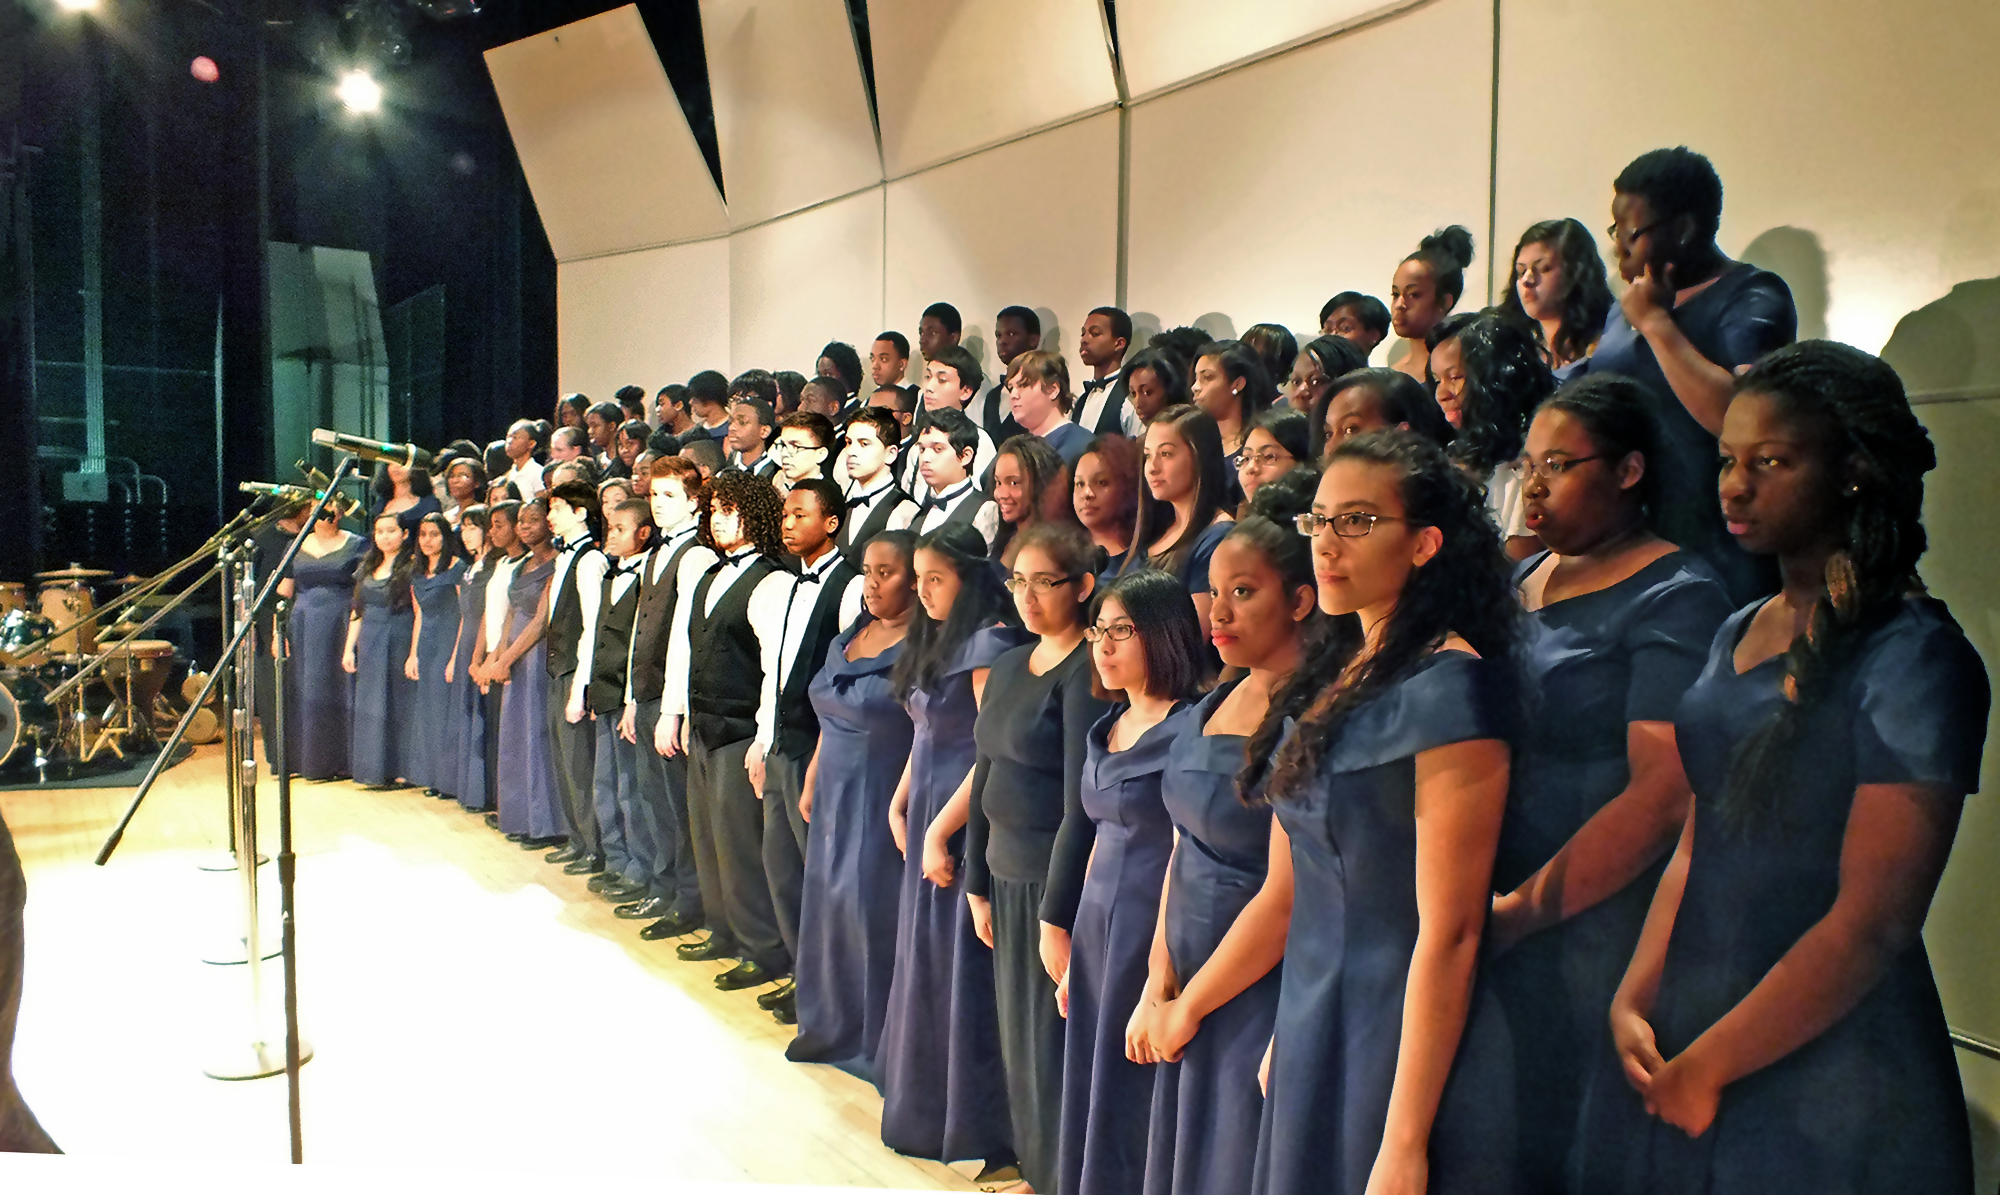 Northwestern_High_School_Concert_Choir,_All-Choirs_Spring_Concert,_May_2013.png